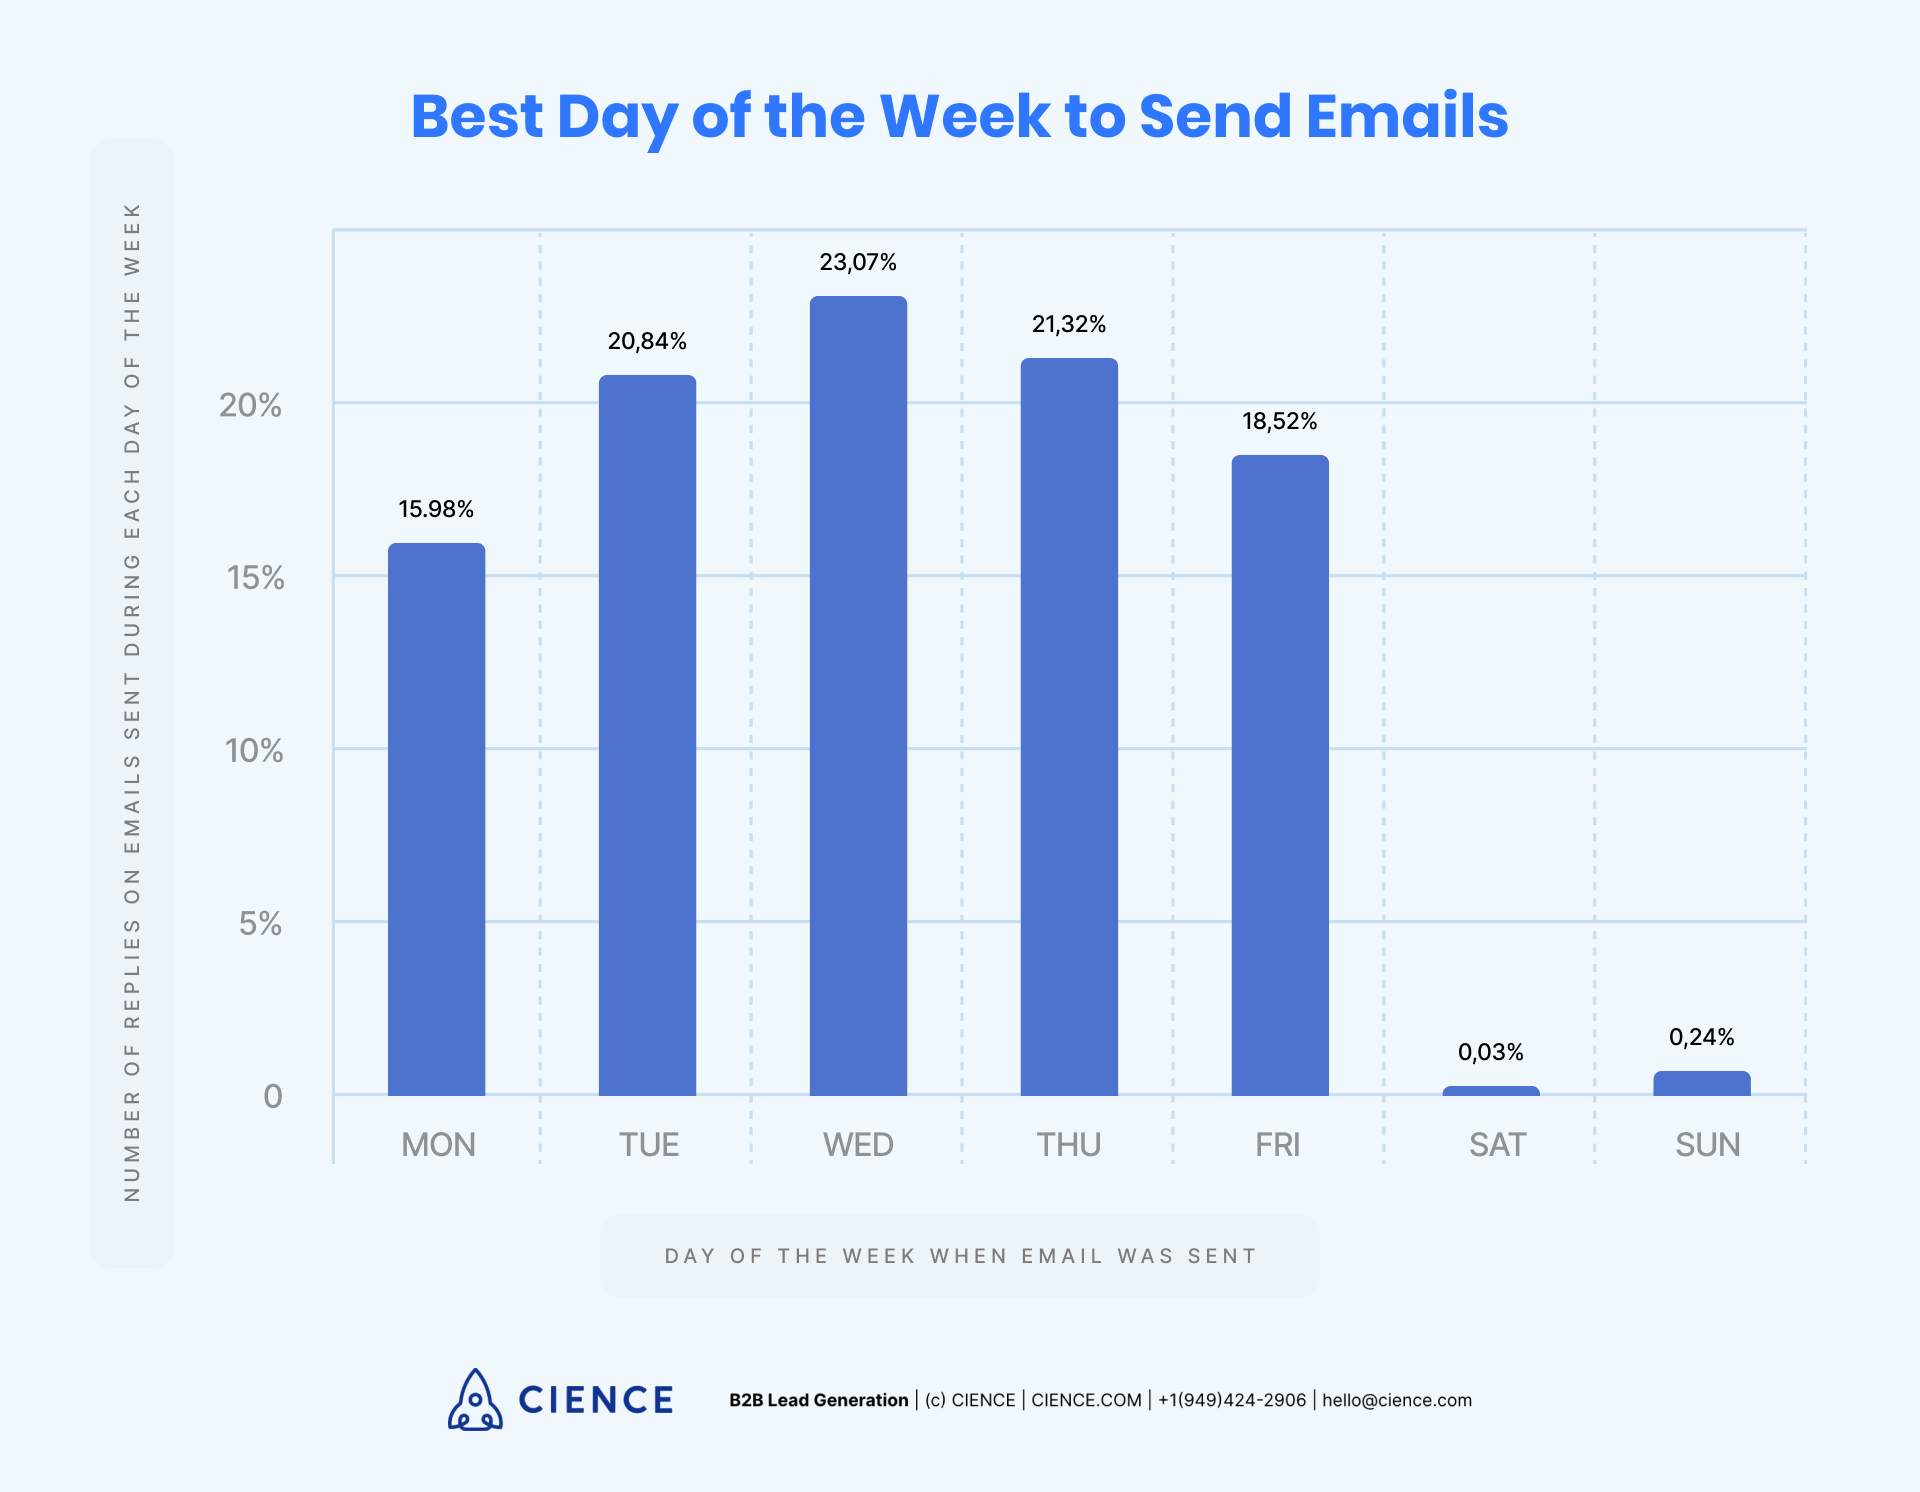 Best day of the week to send emails